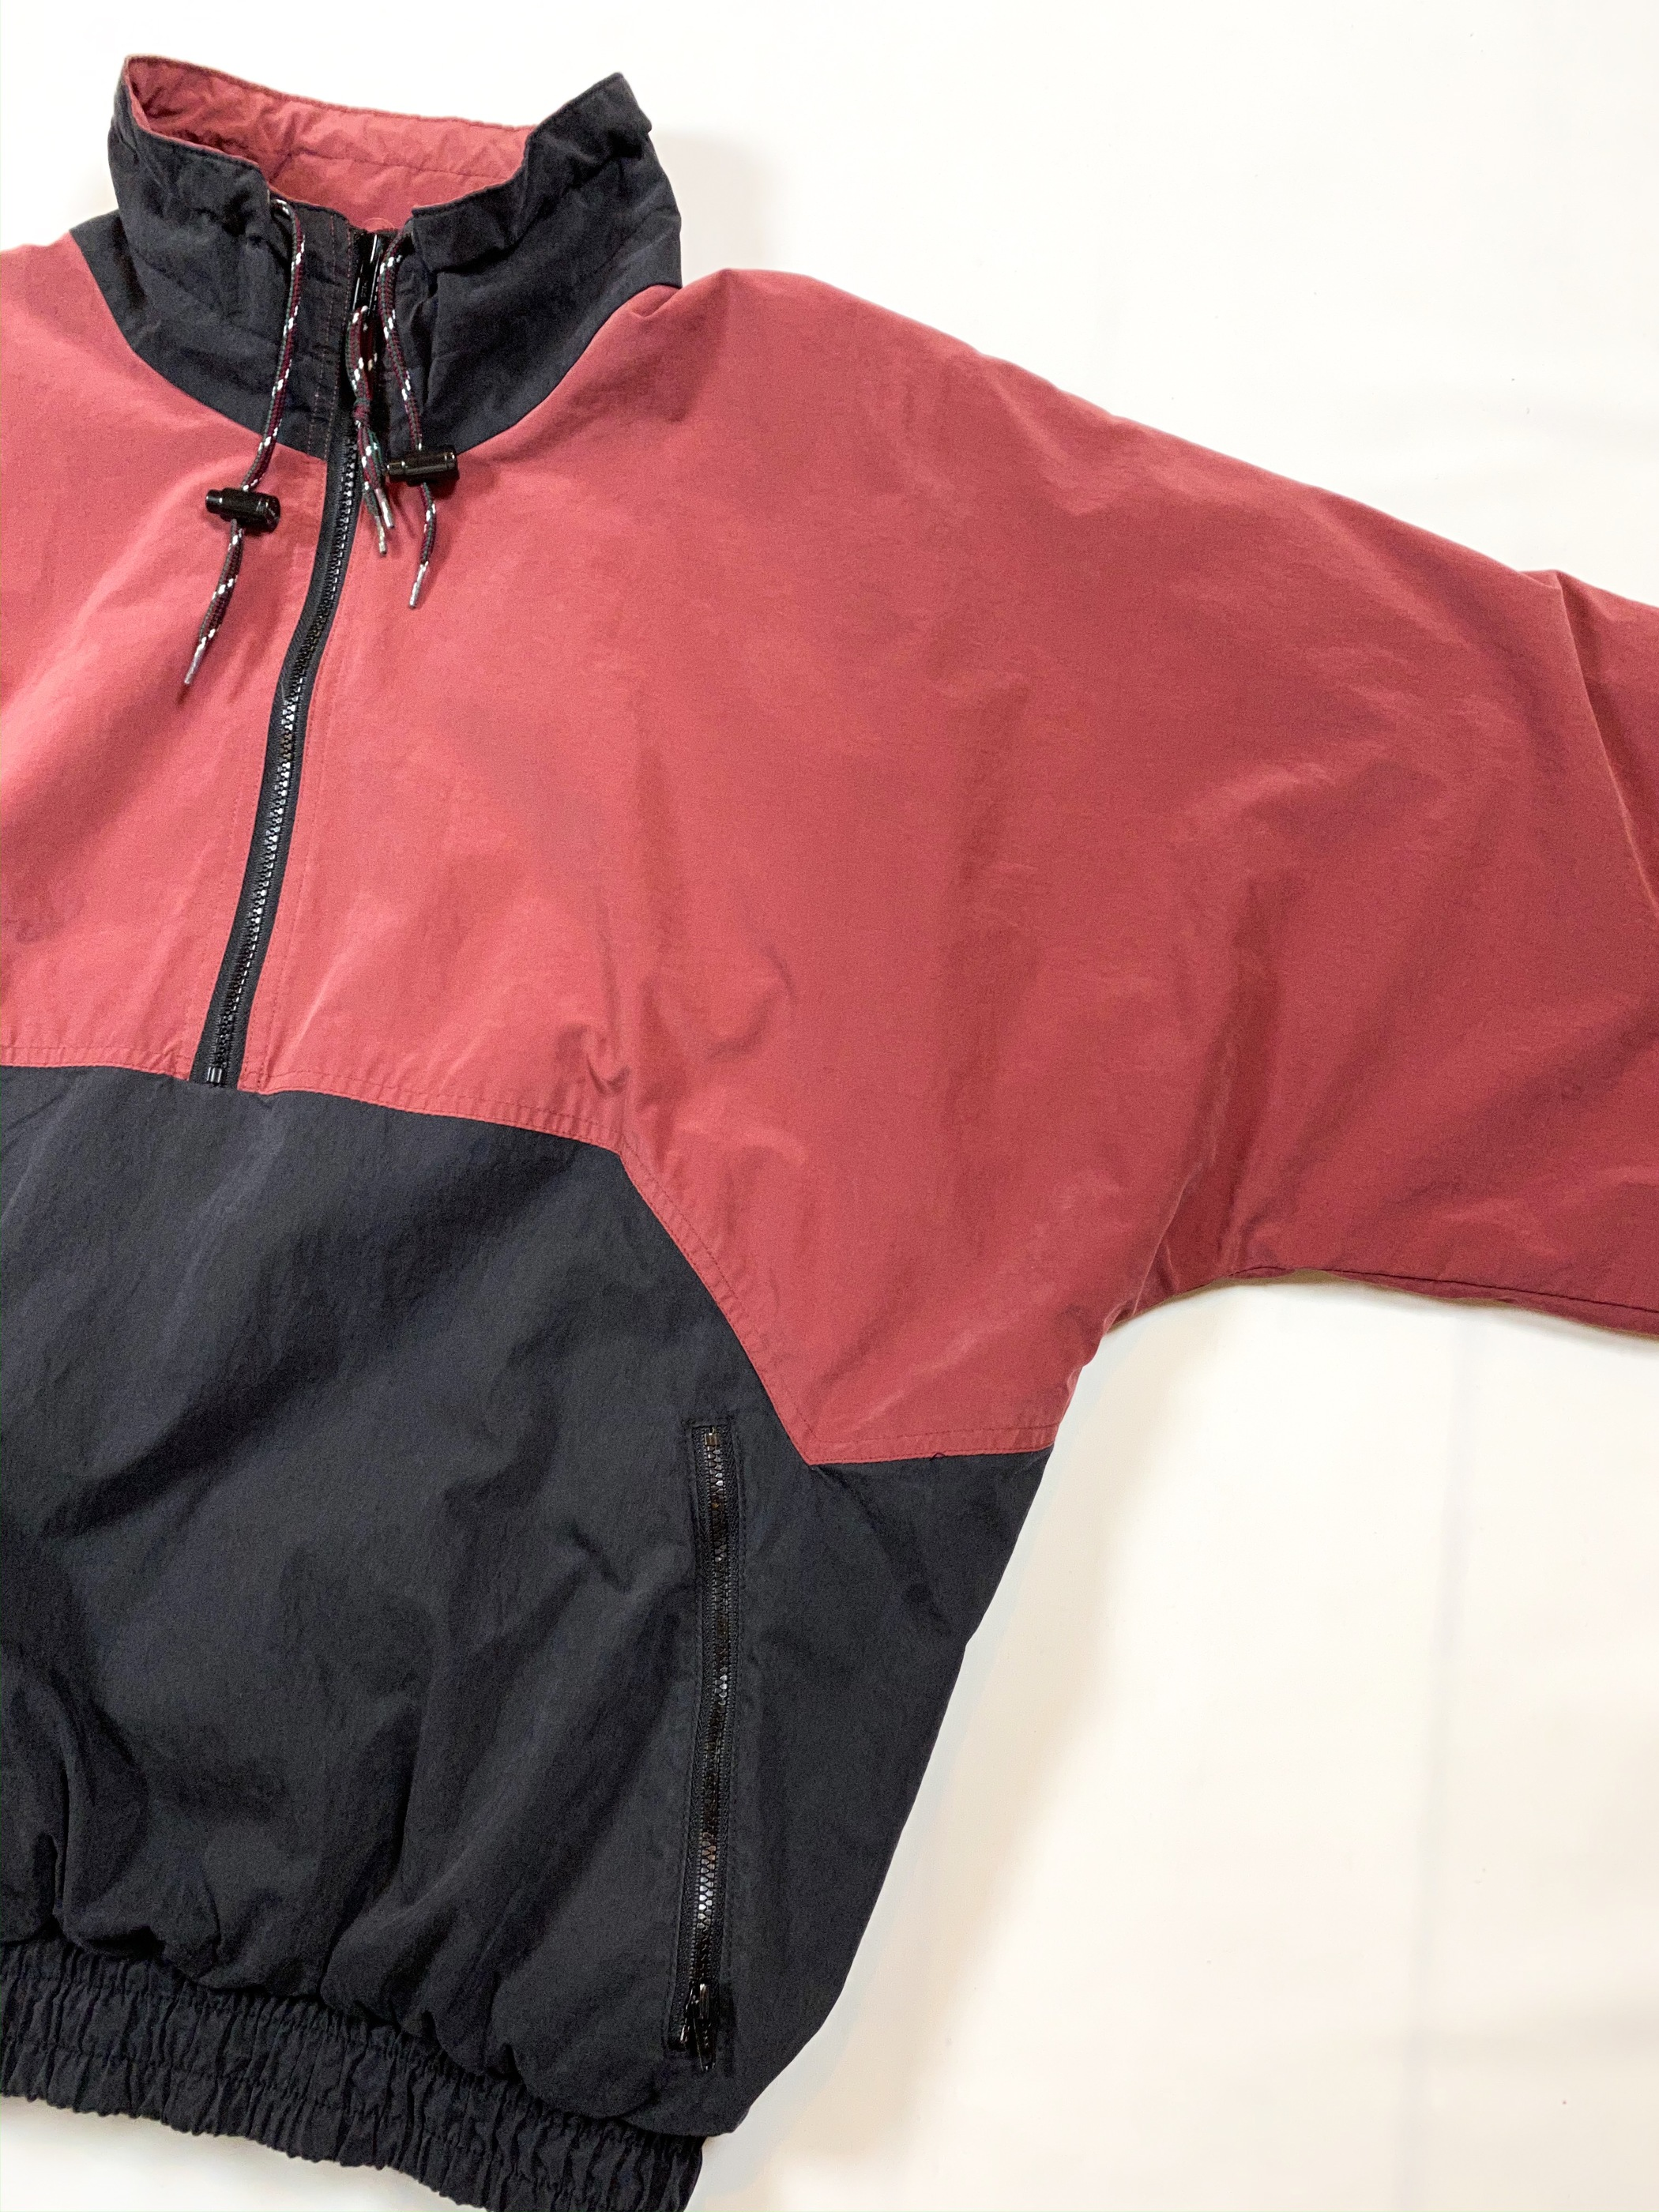 90's JANSPORT 2 tone anorak jacket